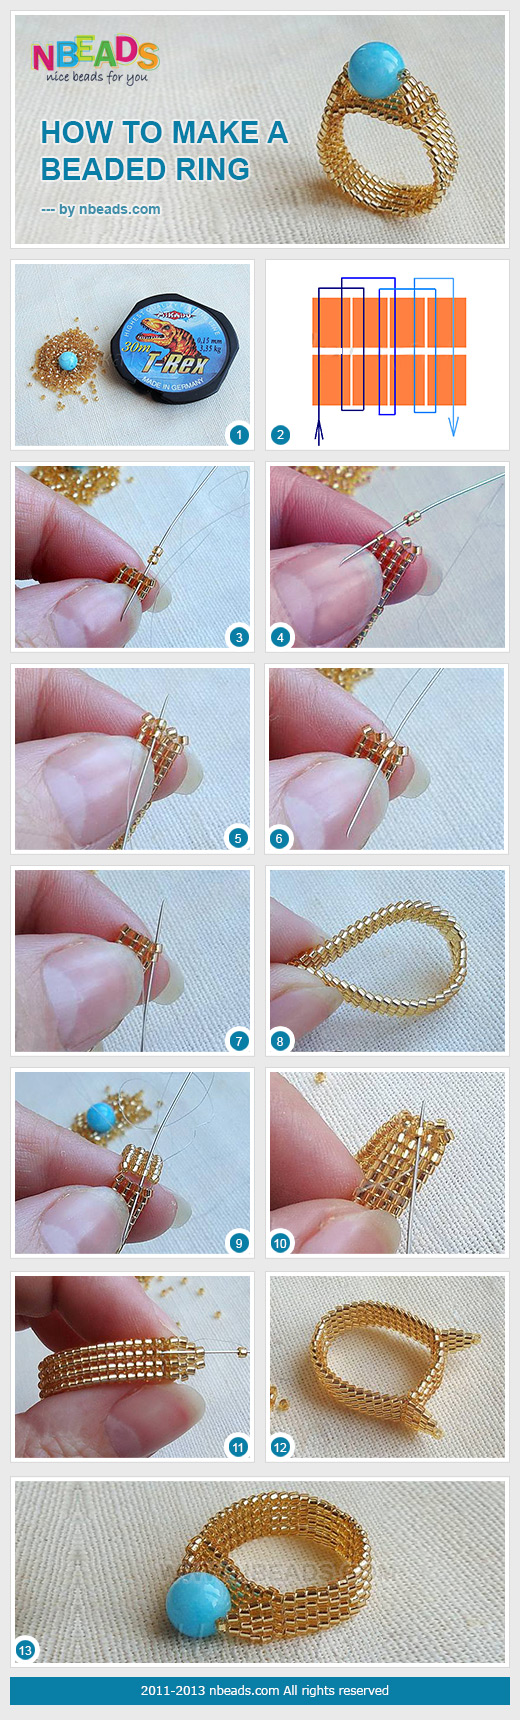 How to Make A Beaded Ring – Nbeads